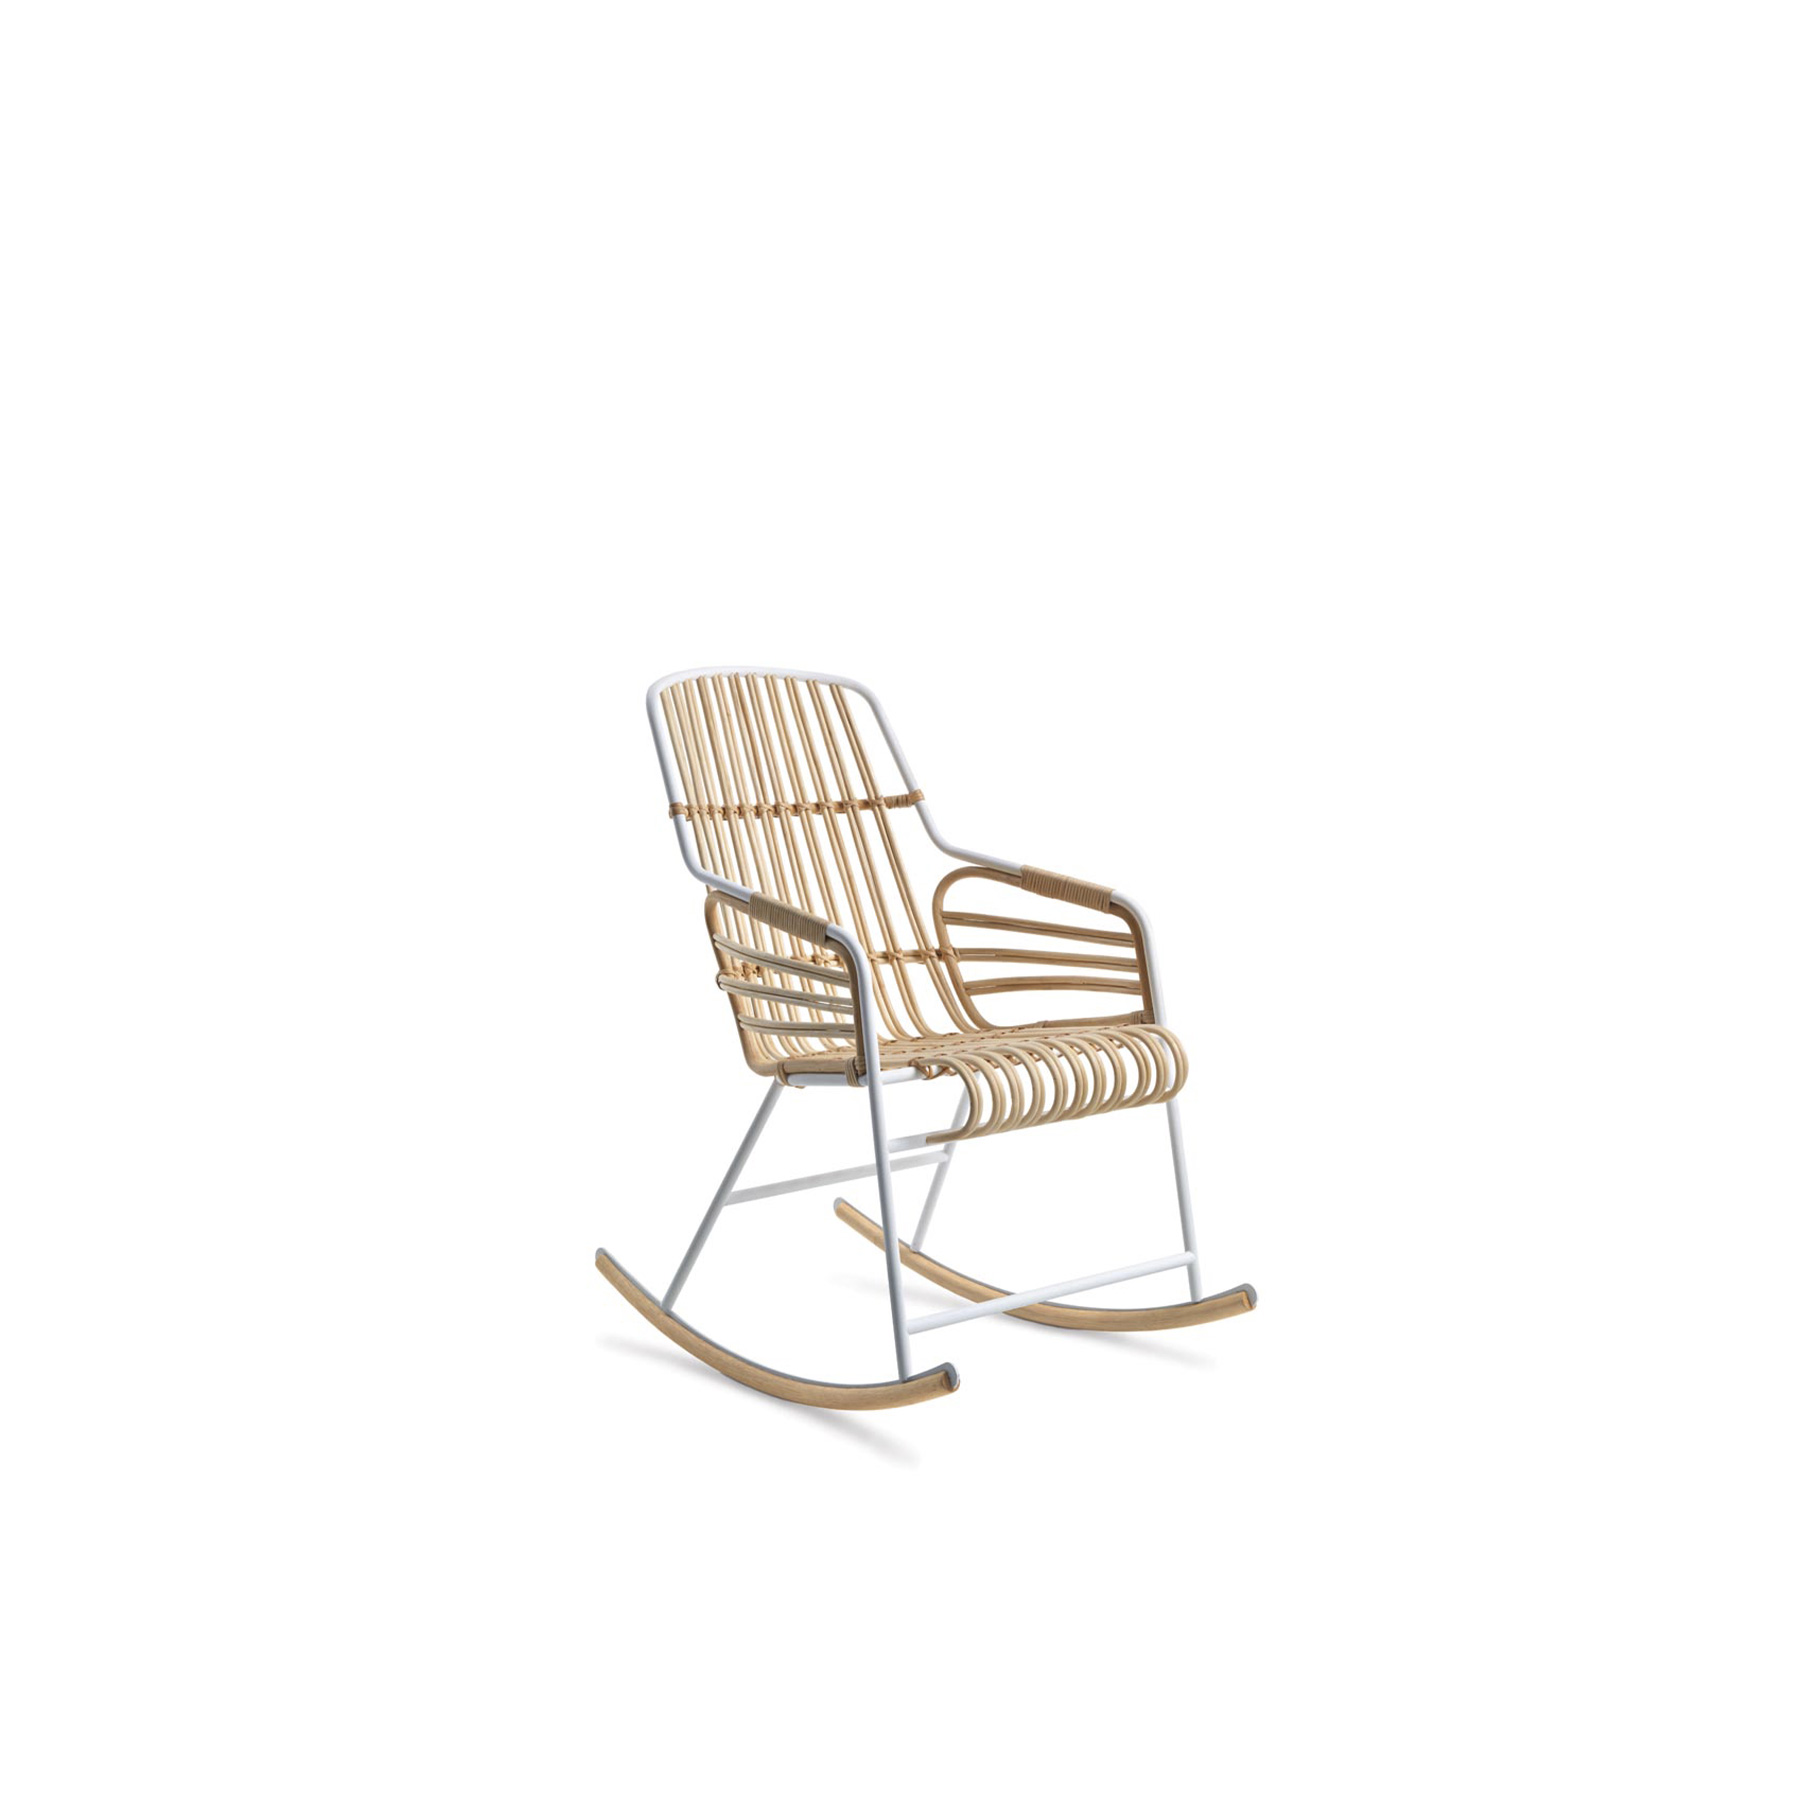 Raphia Rocking Chair - Raphia Rocking is the offspring of a research project into the use of materials and how they can be exploited as furnishings. It is the perfect convergence of modernity and tradition, of technology and craftsmanship. An oxymoron that brings together two of the spirits of production in Italy: the metal industry and the small timehonoured manufacturers of rattan and wicker products. Today, there remain very few firms which conserve the know-how of rattan, where manual skills and craftsmanship combine to insure that every creation is unique. Raphia embodies this history and tradition in a contemporary context.